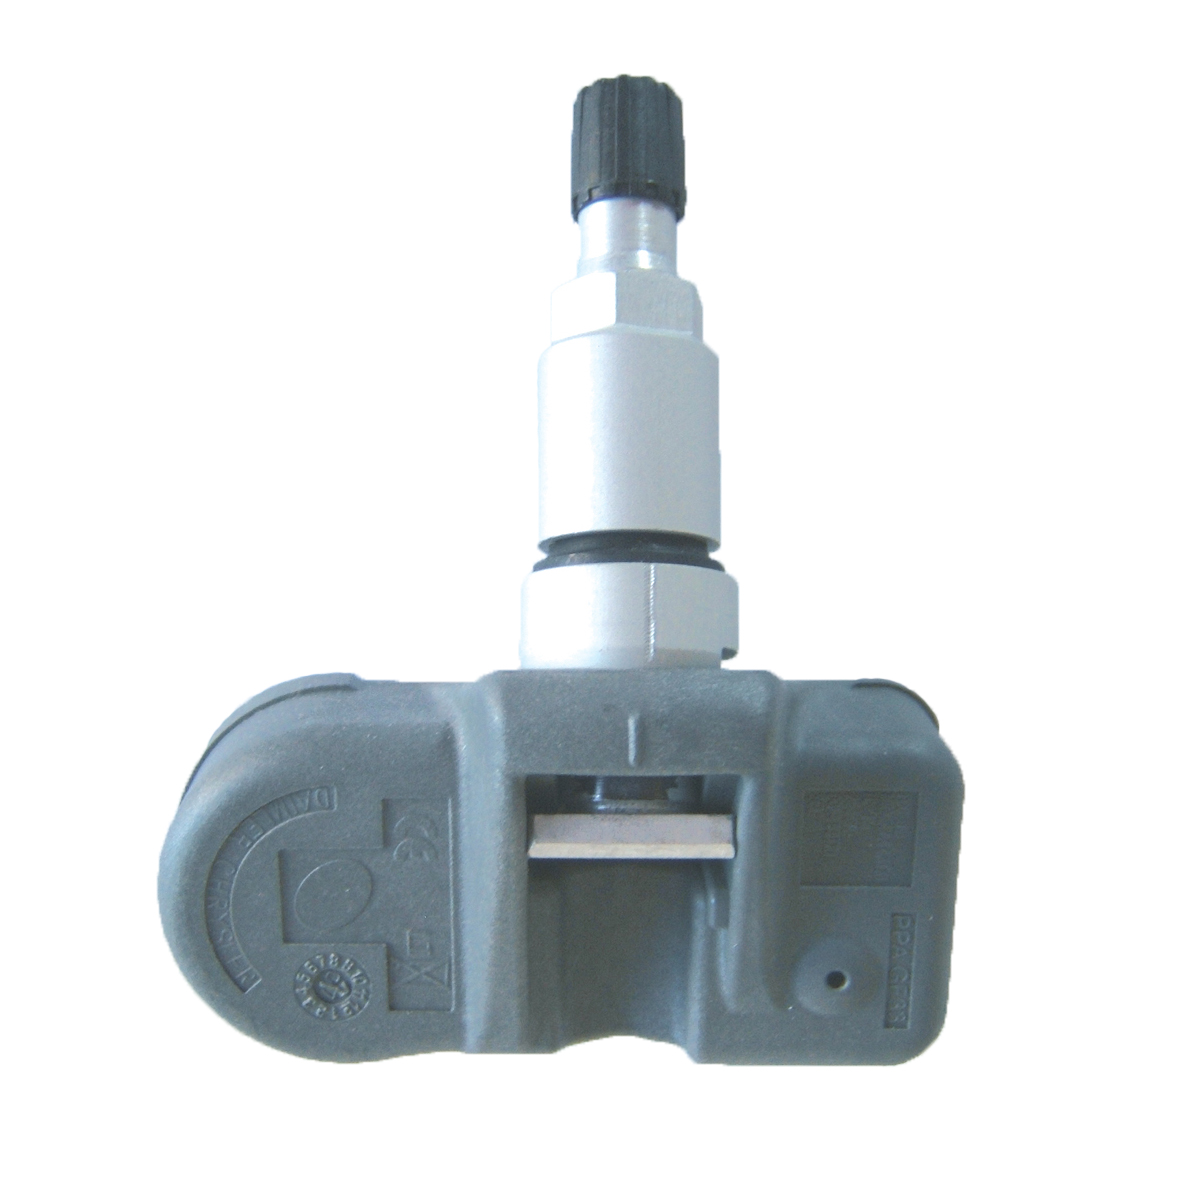 Clamp-In Valves for Schrader Gen Alpha}